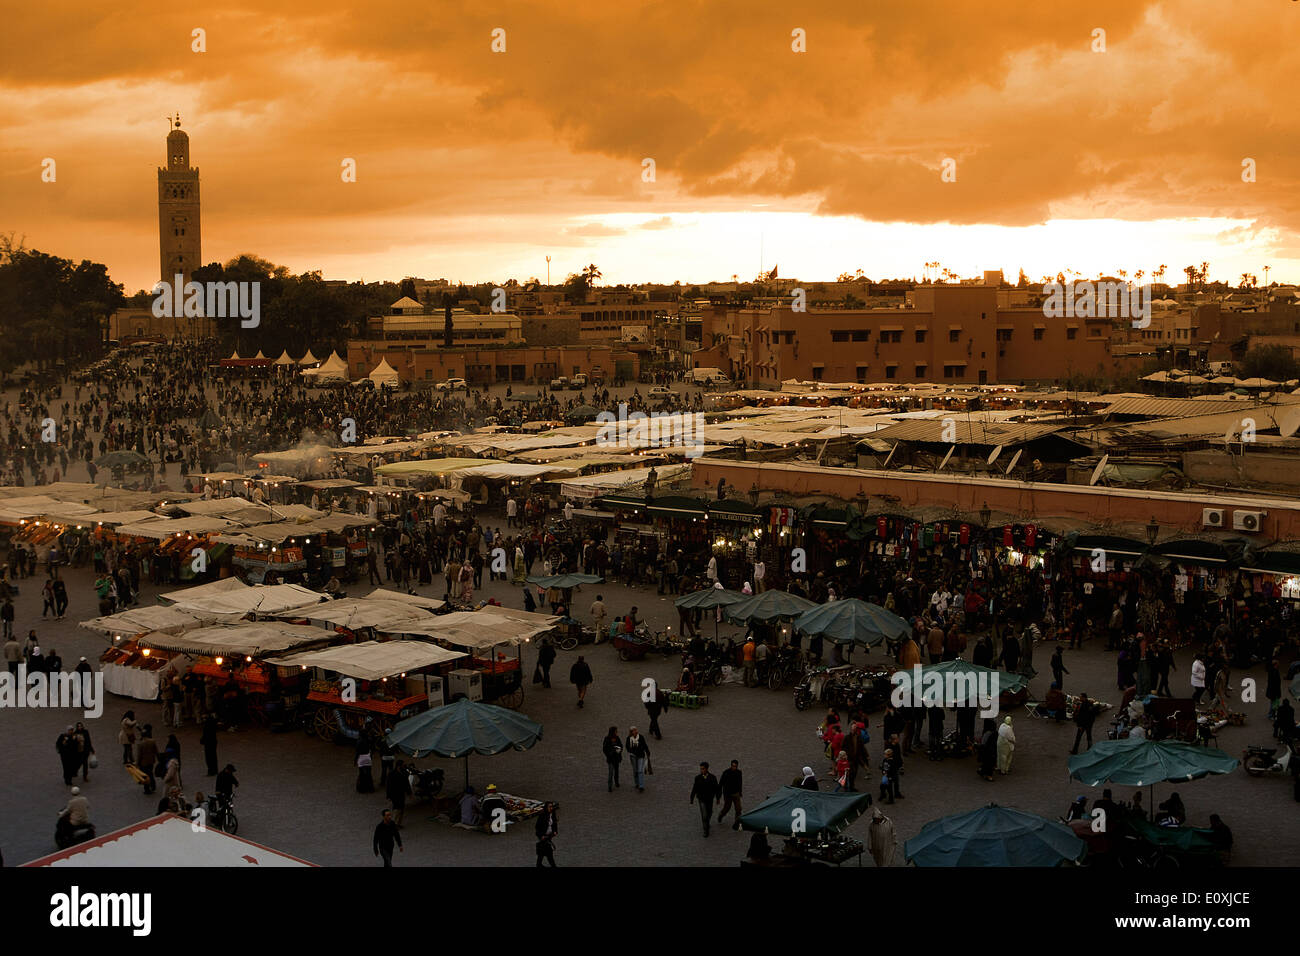 Jamaa el Fna,the main square in Marrakesh,Morocco.On background the Koutoubia mosque - Stock Image